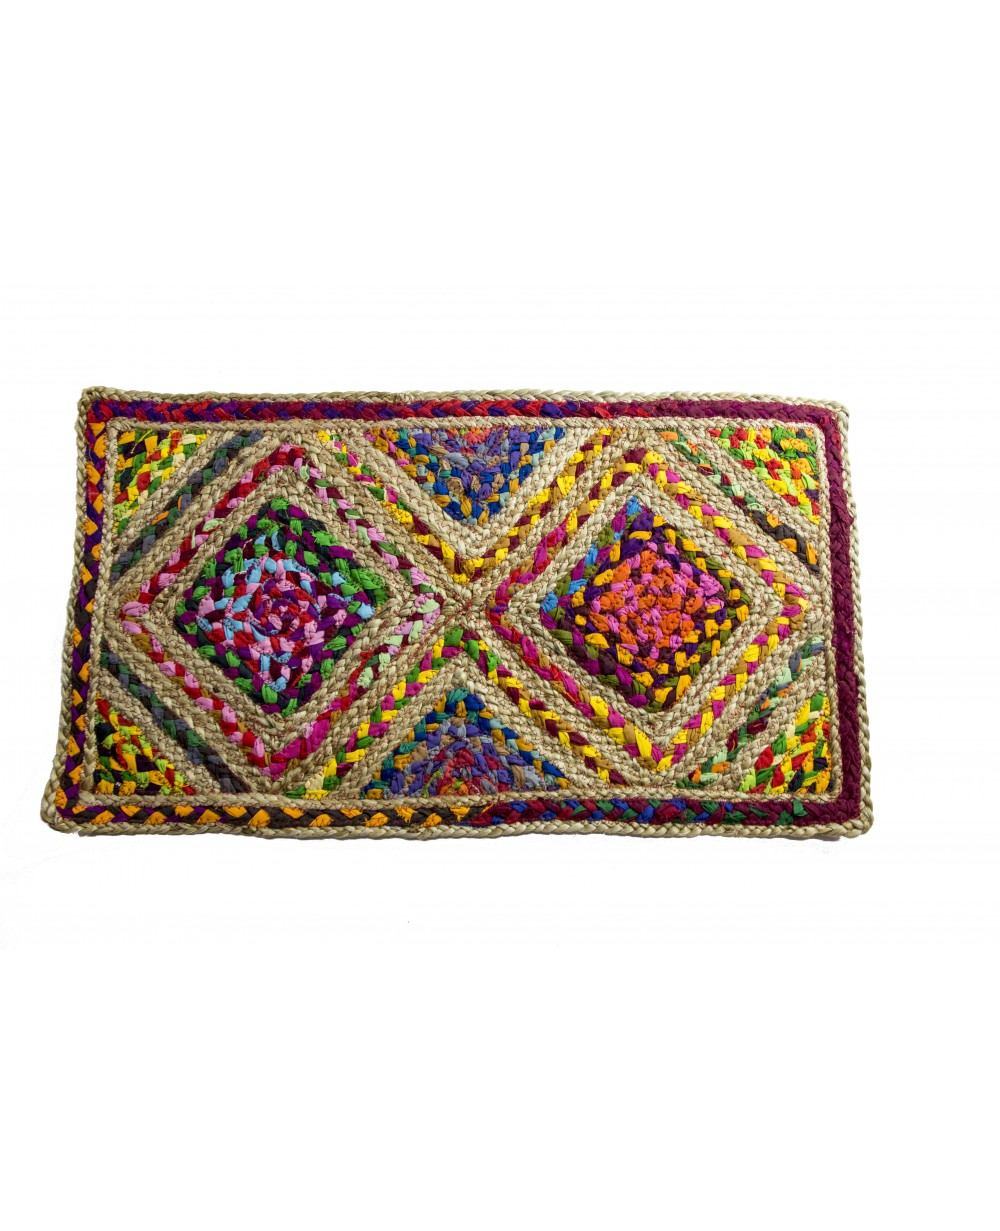 Handscart Handcrafted Chindi Jute Round Colorful Natural